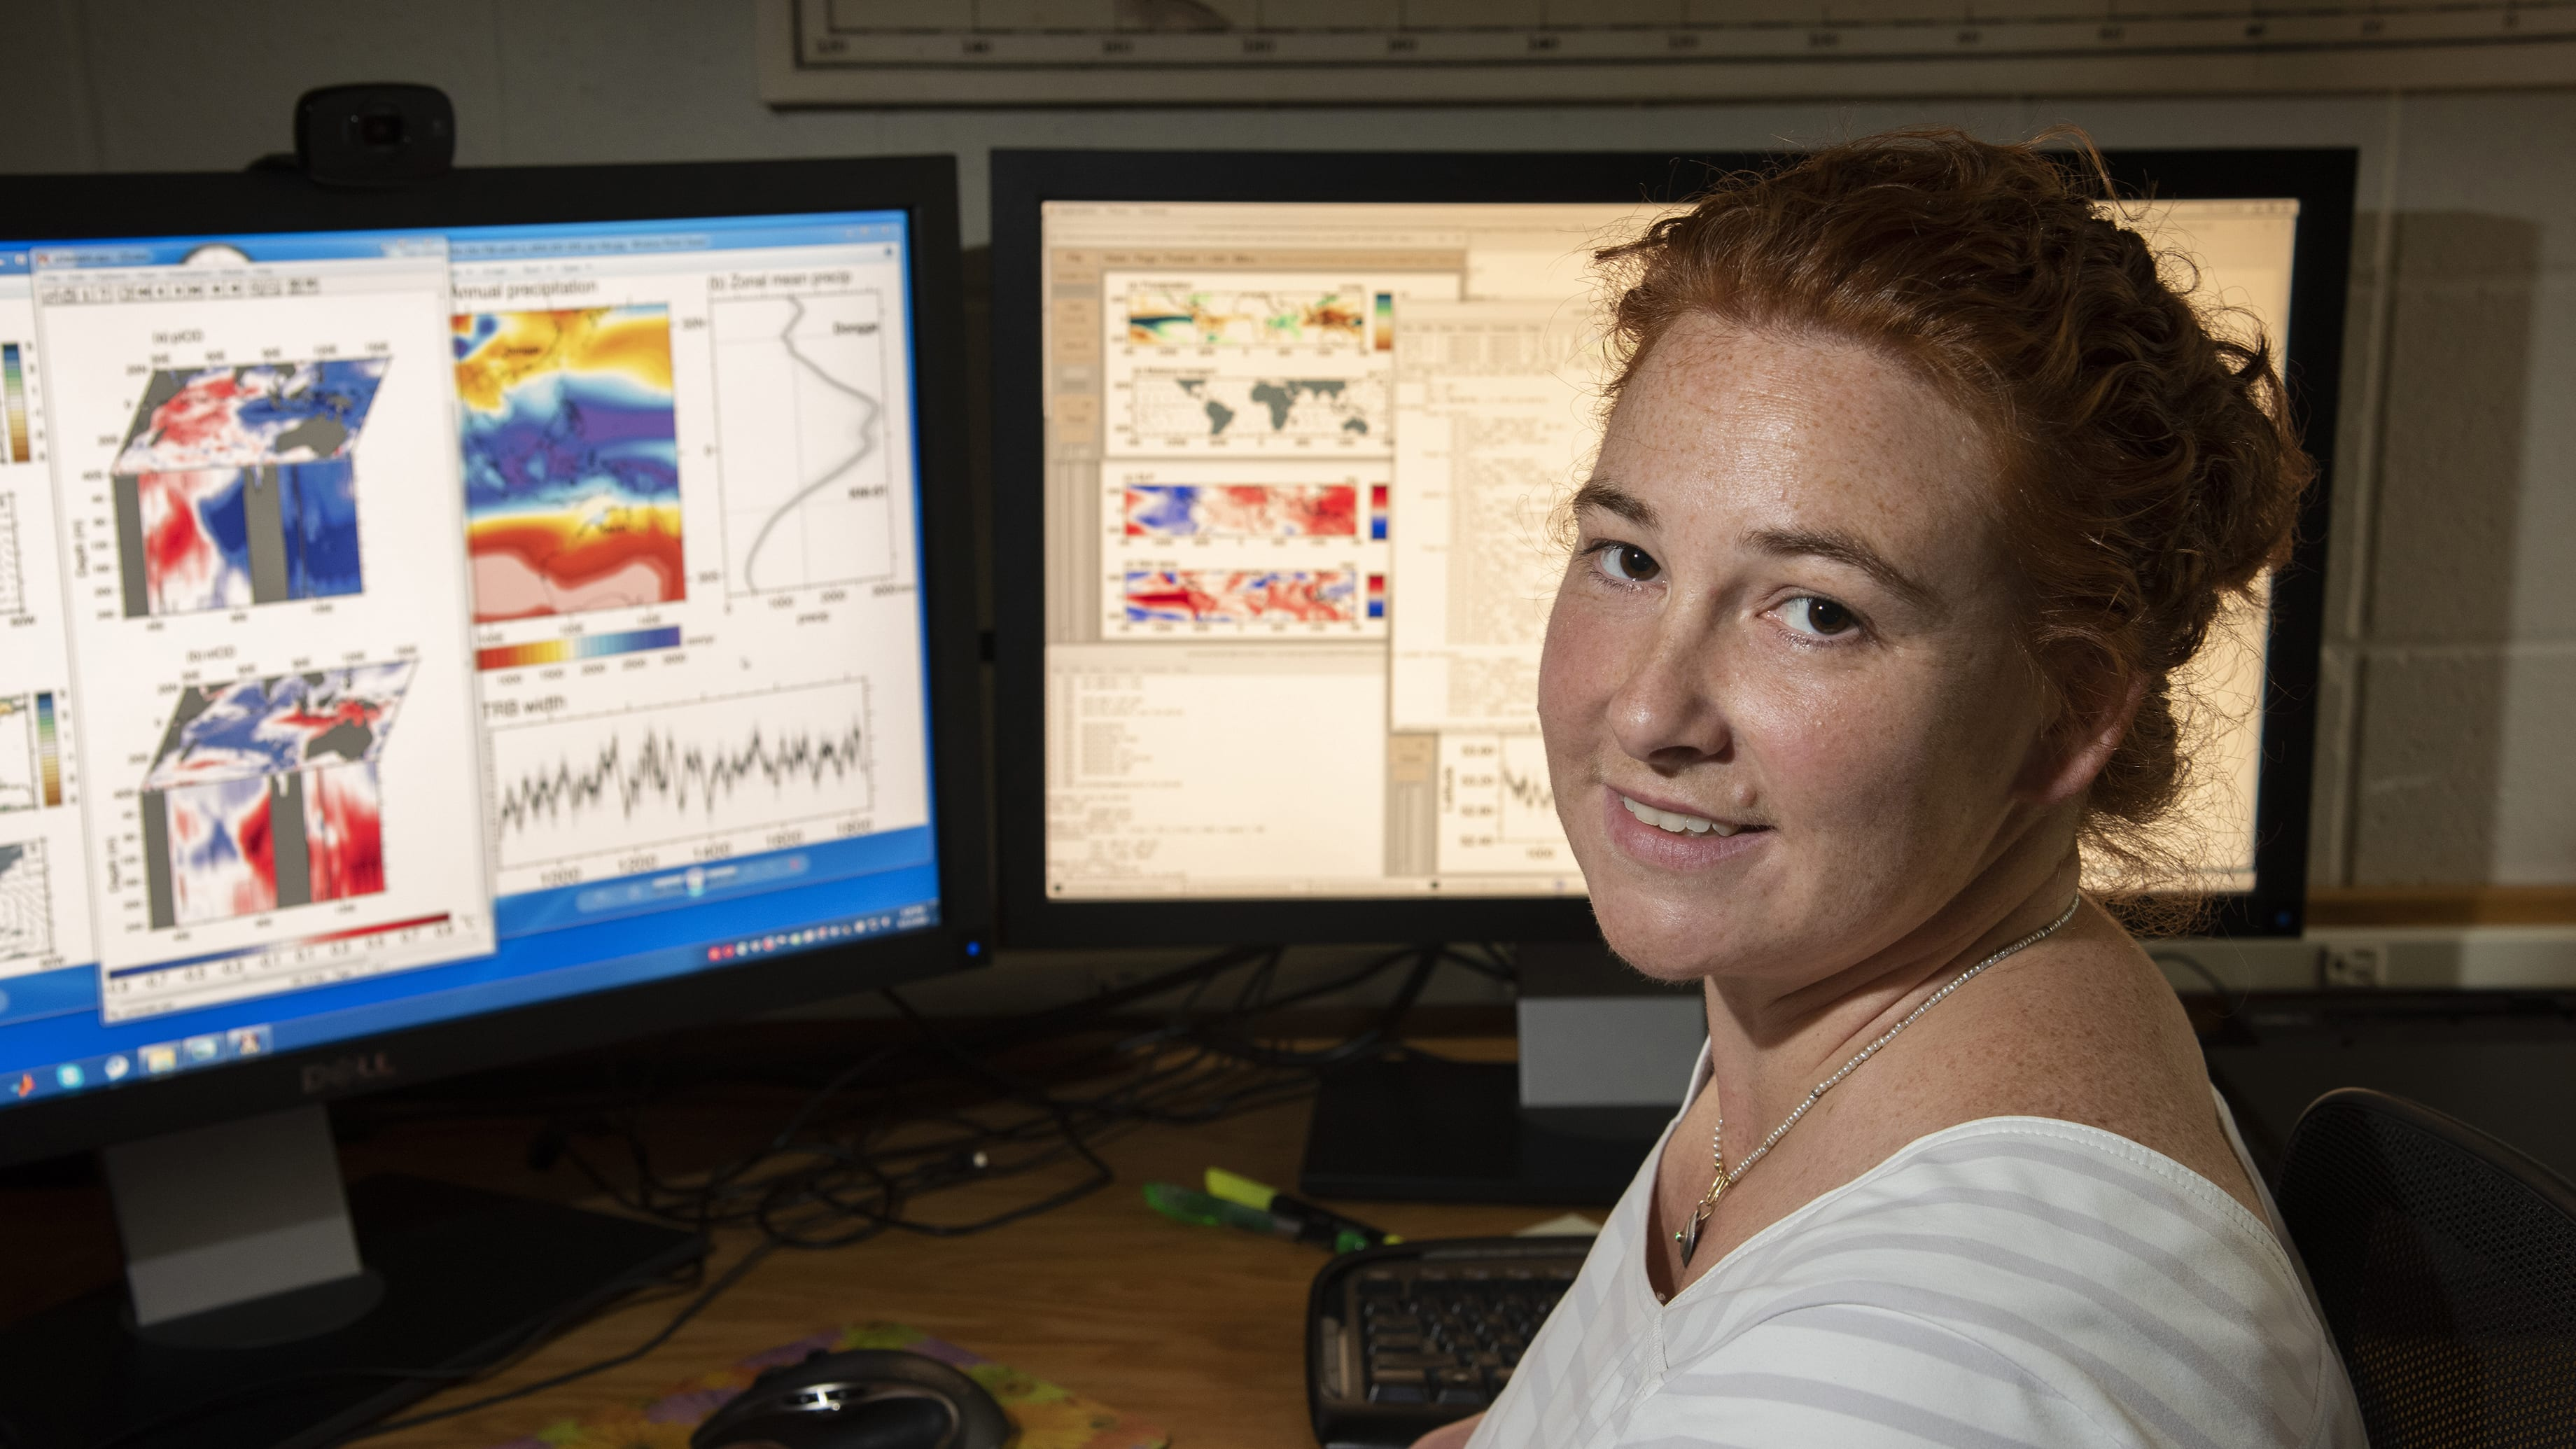 WHOI physical oceanographer Caroline Ummenhofer combines temperature and current measurements from the Indian Ocean with climate records and computer simulations to understand how ocean patterns influence rainfall and extreme weather events on adjacent landmasses. (Photo by Tom Kleindinst, © Woods Hole Oceanographic Institution)